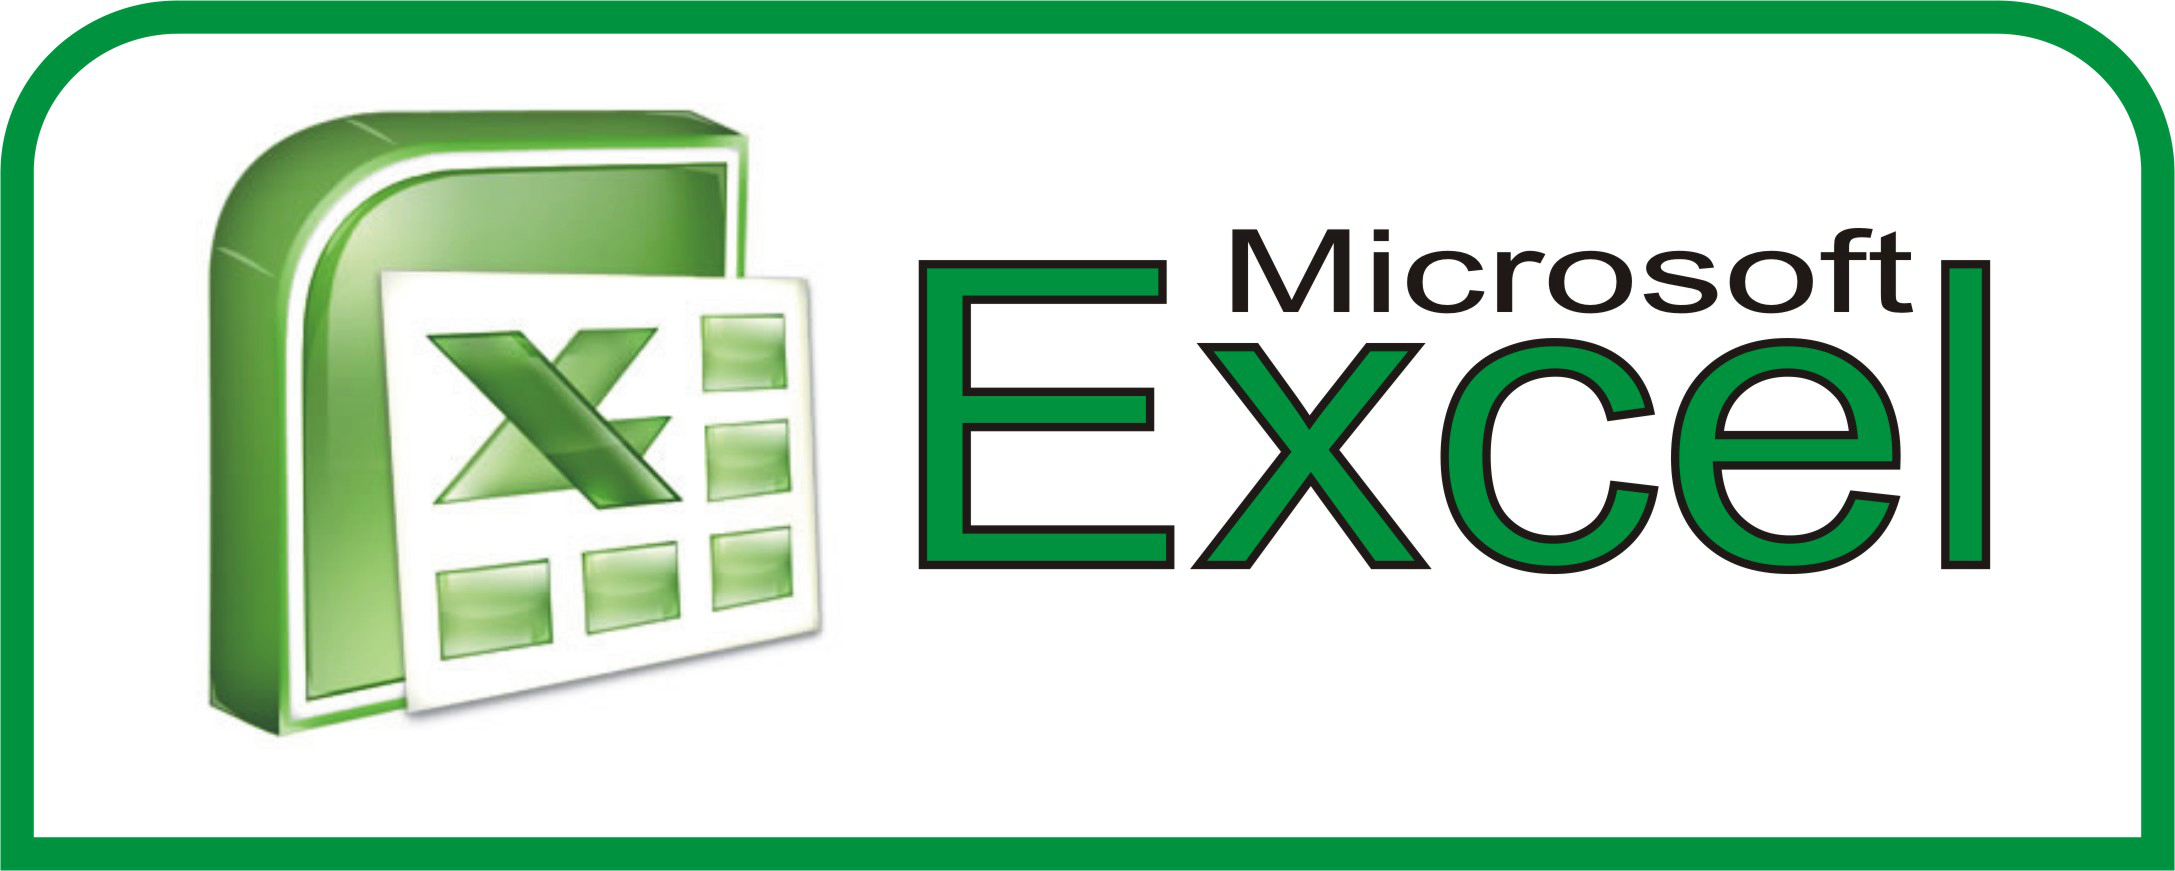 Ediblewildsus  Pretty  Excel Shortcuts You Probably Didnt Know About  Techdissected With Lovely Create A Report On Excel Besides Mixed Reference Excel  Furthermore Split A Cell Excel With Enchanting Time Calculator In Excel Also Descriptive Statistics On Excel In Addition Da  Excel And Download Ms Excel As Well As Excel Creating Charts Additionally Vlookup Excel  Tutorial From Techdissectedcom With Ediblewildsus  Lovely  Excel Shortcuts You Probably Didnt Know About  Techdissected With Enchanting Create A Report On Excel Besides Mixed Reference Excel  Furthermore Split A Cell Excel And Pretty Time Calculator In Excel Also Descriptive Statistics On Excel In Addition Da  Excel From Techdissectedcom